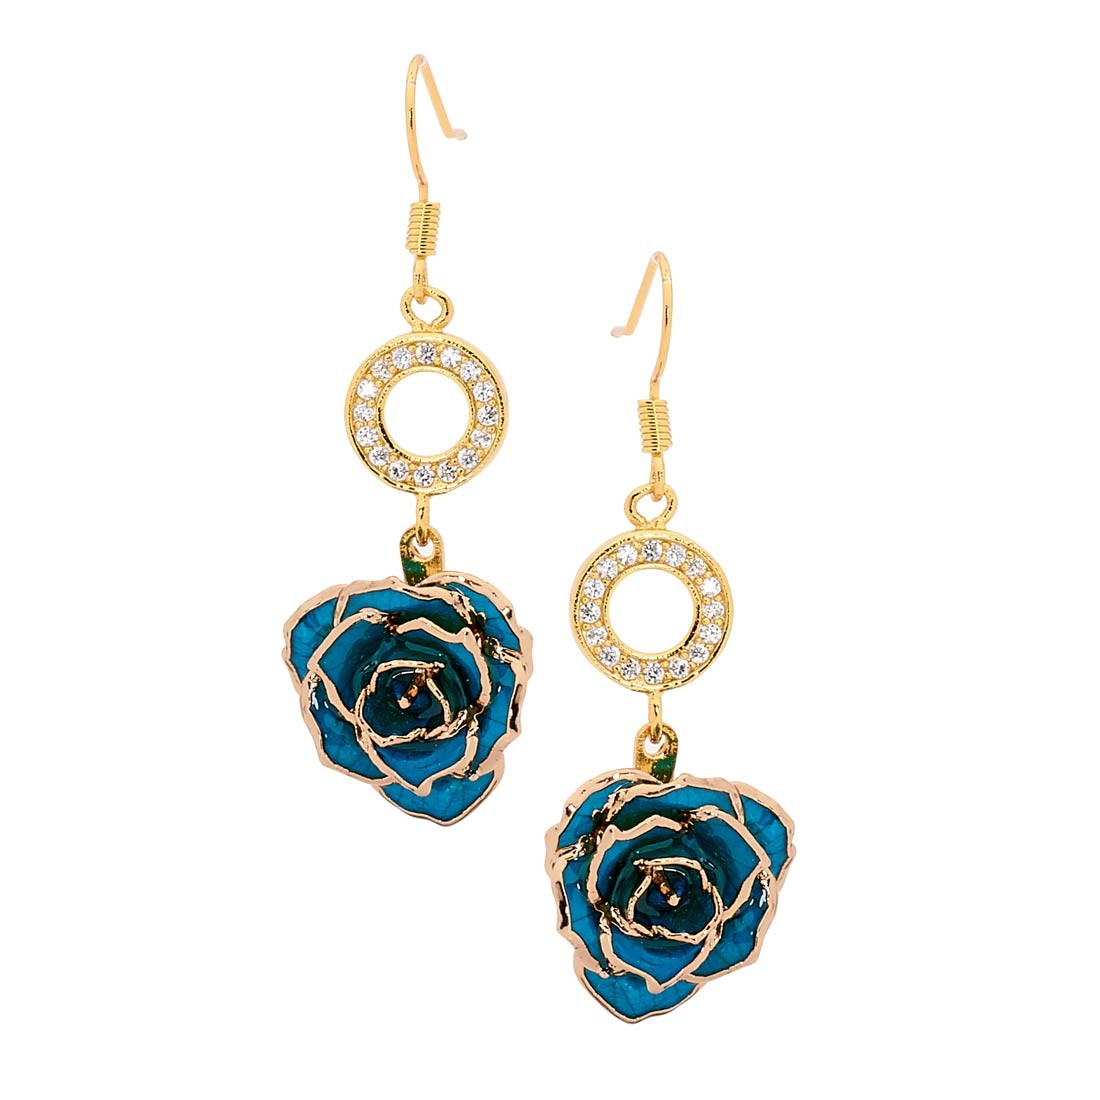 281f4dcc535df Blue Glazed Rose Earrings in 24K Gold